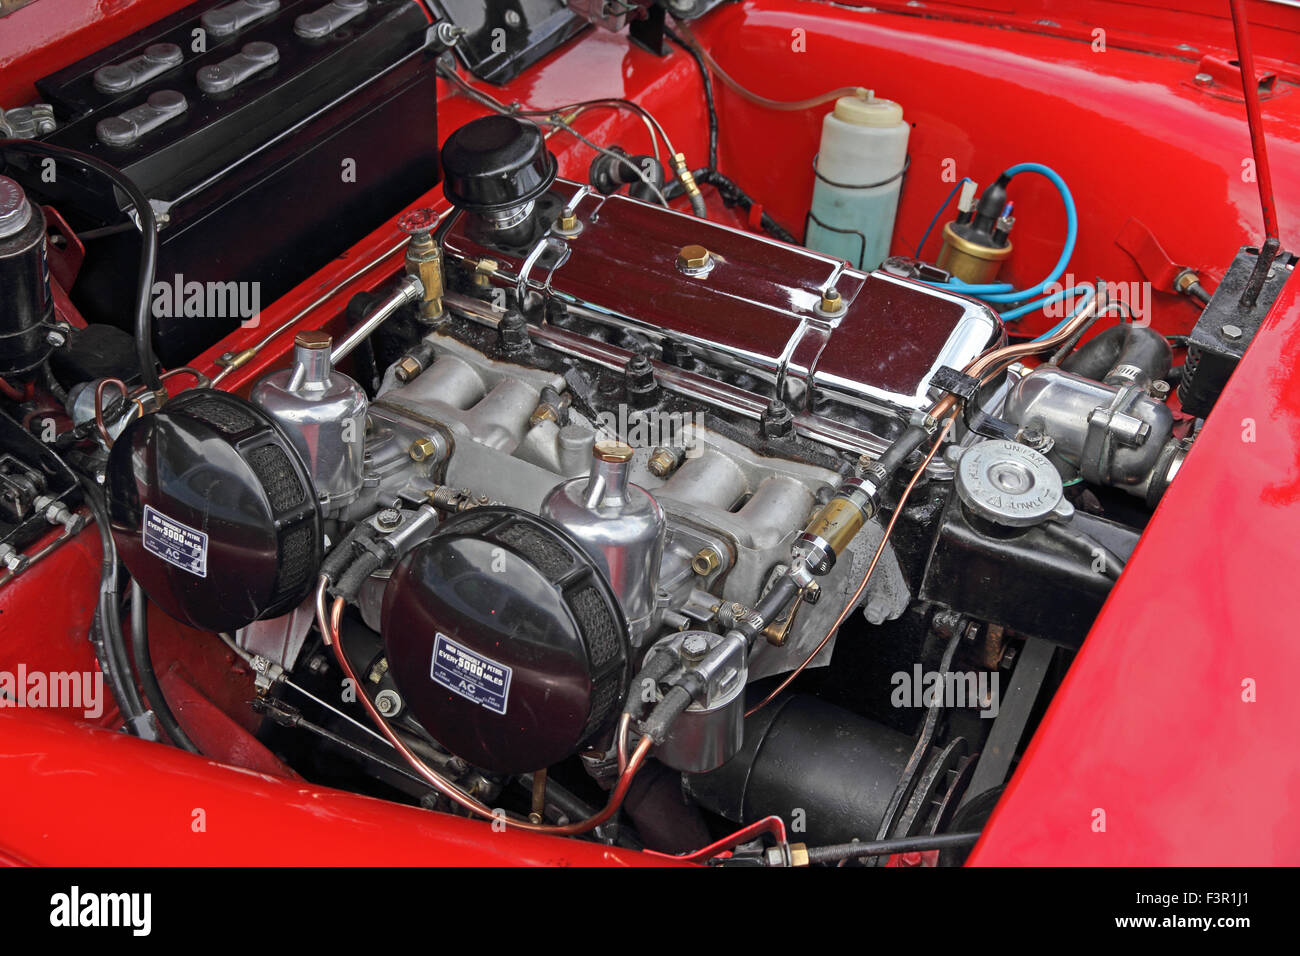 LN2n 1186 also Stock Photo Engine  partment Of Red 1962 Triumph Tr3 Sports Car 88401993 likewise Wiring Diagram For 1998 Oldsmobile Intrigue likewise Triumph Spitfire Mkii Wiring Diagram as well Triumph Tr4 Wiring Diagram. on tr4a wiring diagram